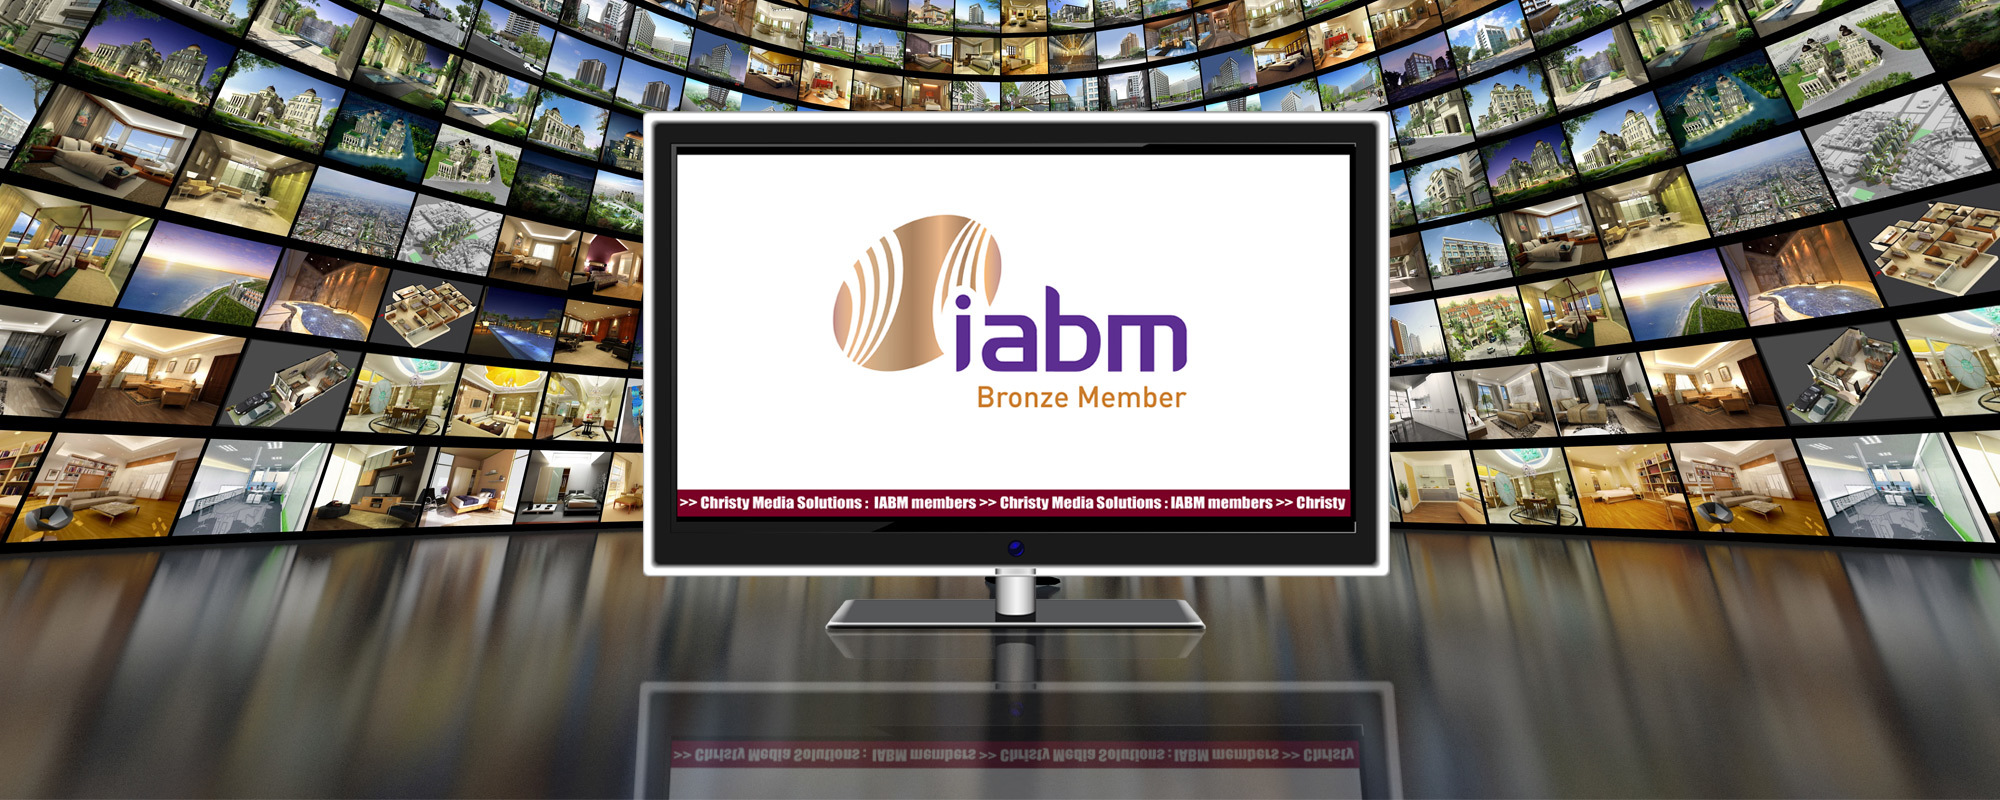 Christy Media Solutions is an IABM member – we recruit for jobs in broadcast and media